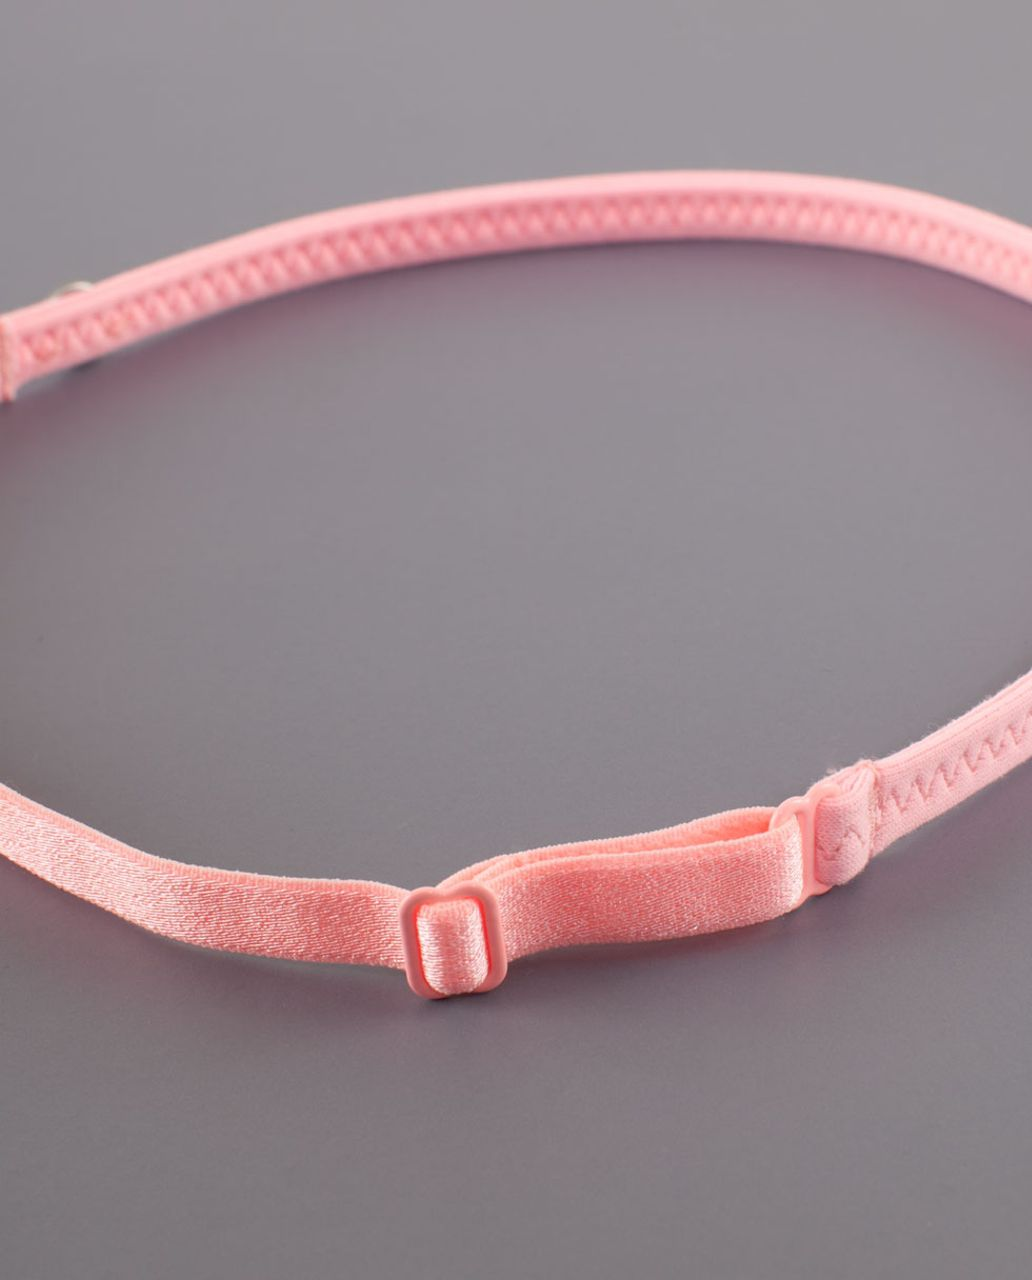 Lululemon Strappy Headband - Bleached Coral